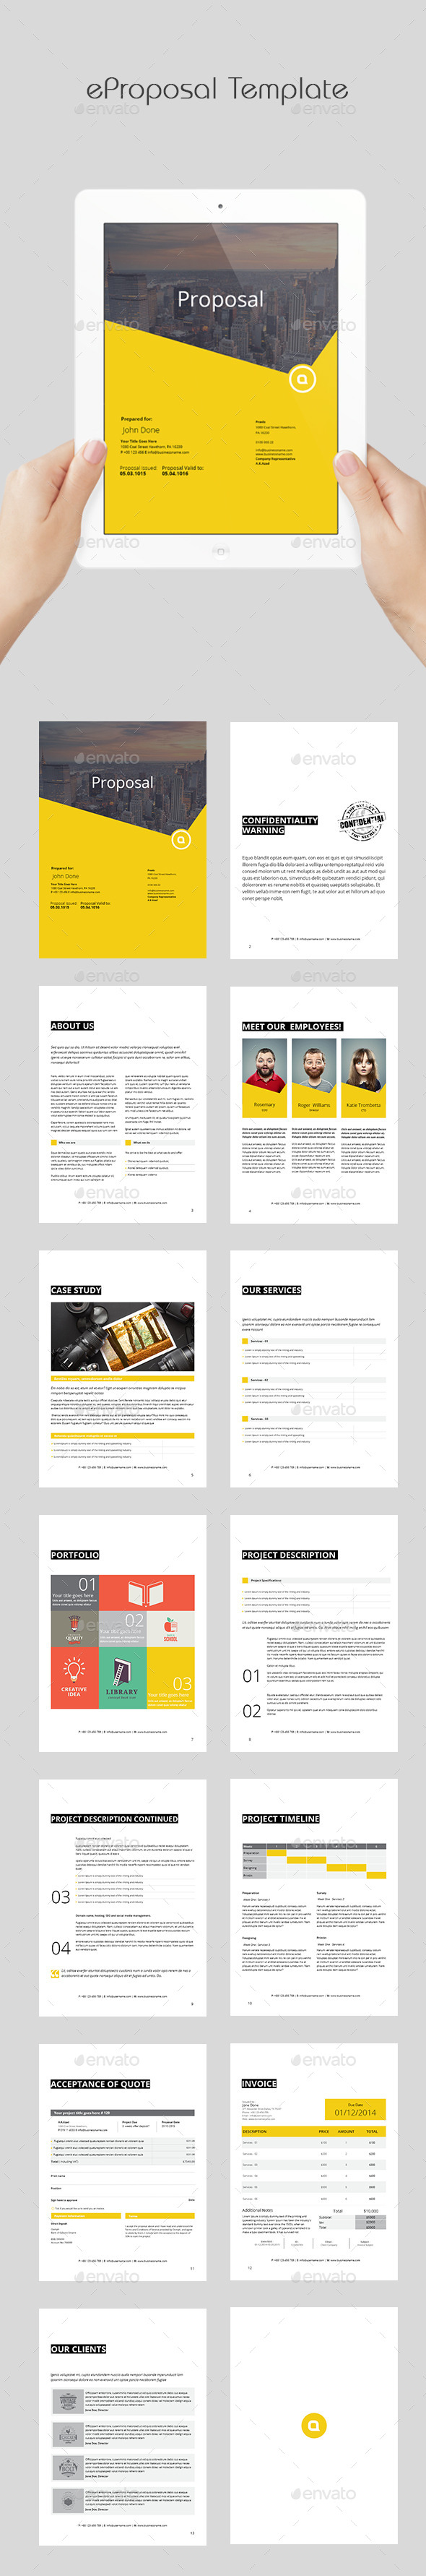 GraphicRiver eProposal Template 11876063